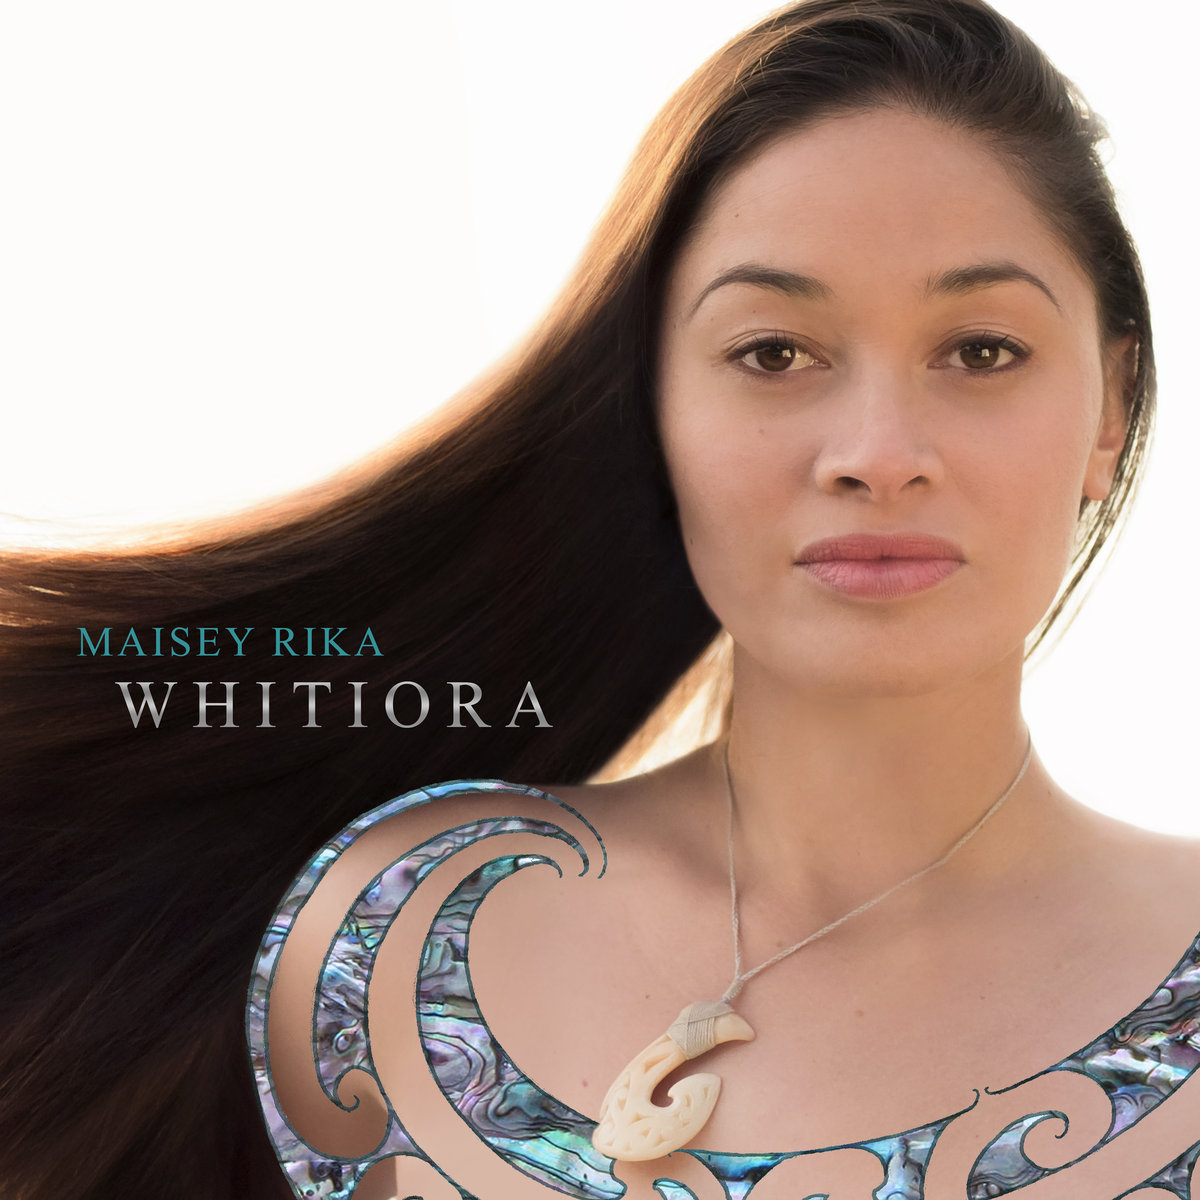 Whitiora – CD